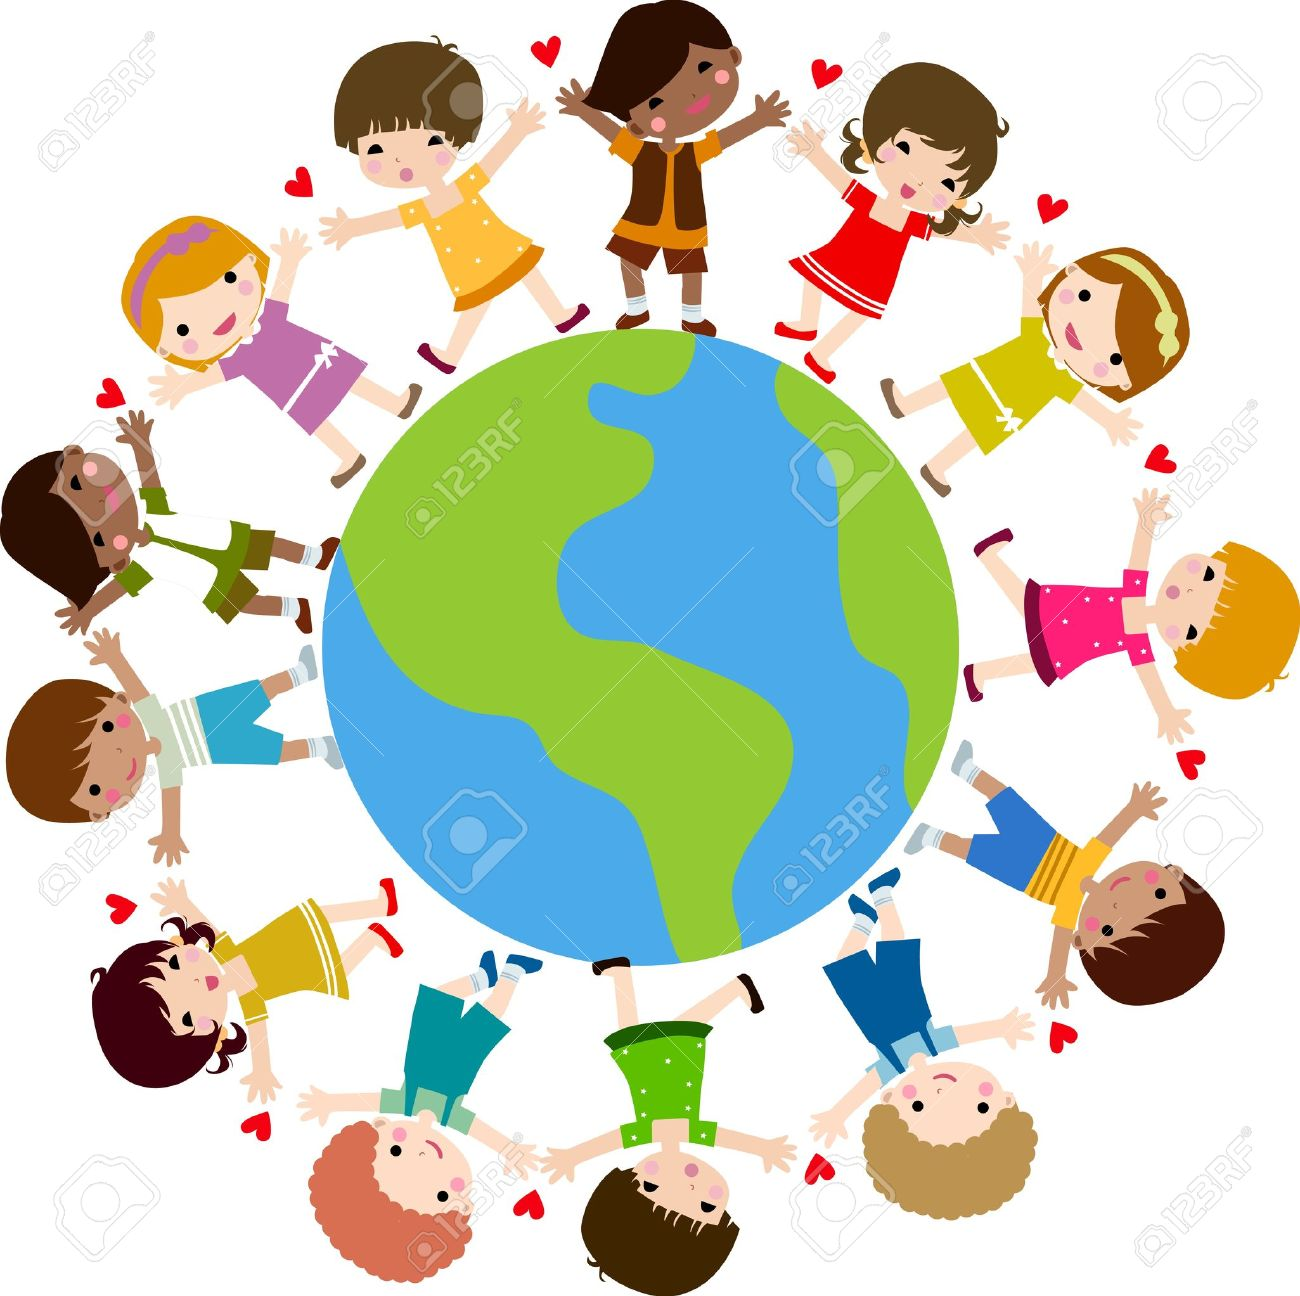 children around the world royalty free cliparts vectors and stock rh 123rf com Food around the World Clip Art kids around the world clip art editable